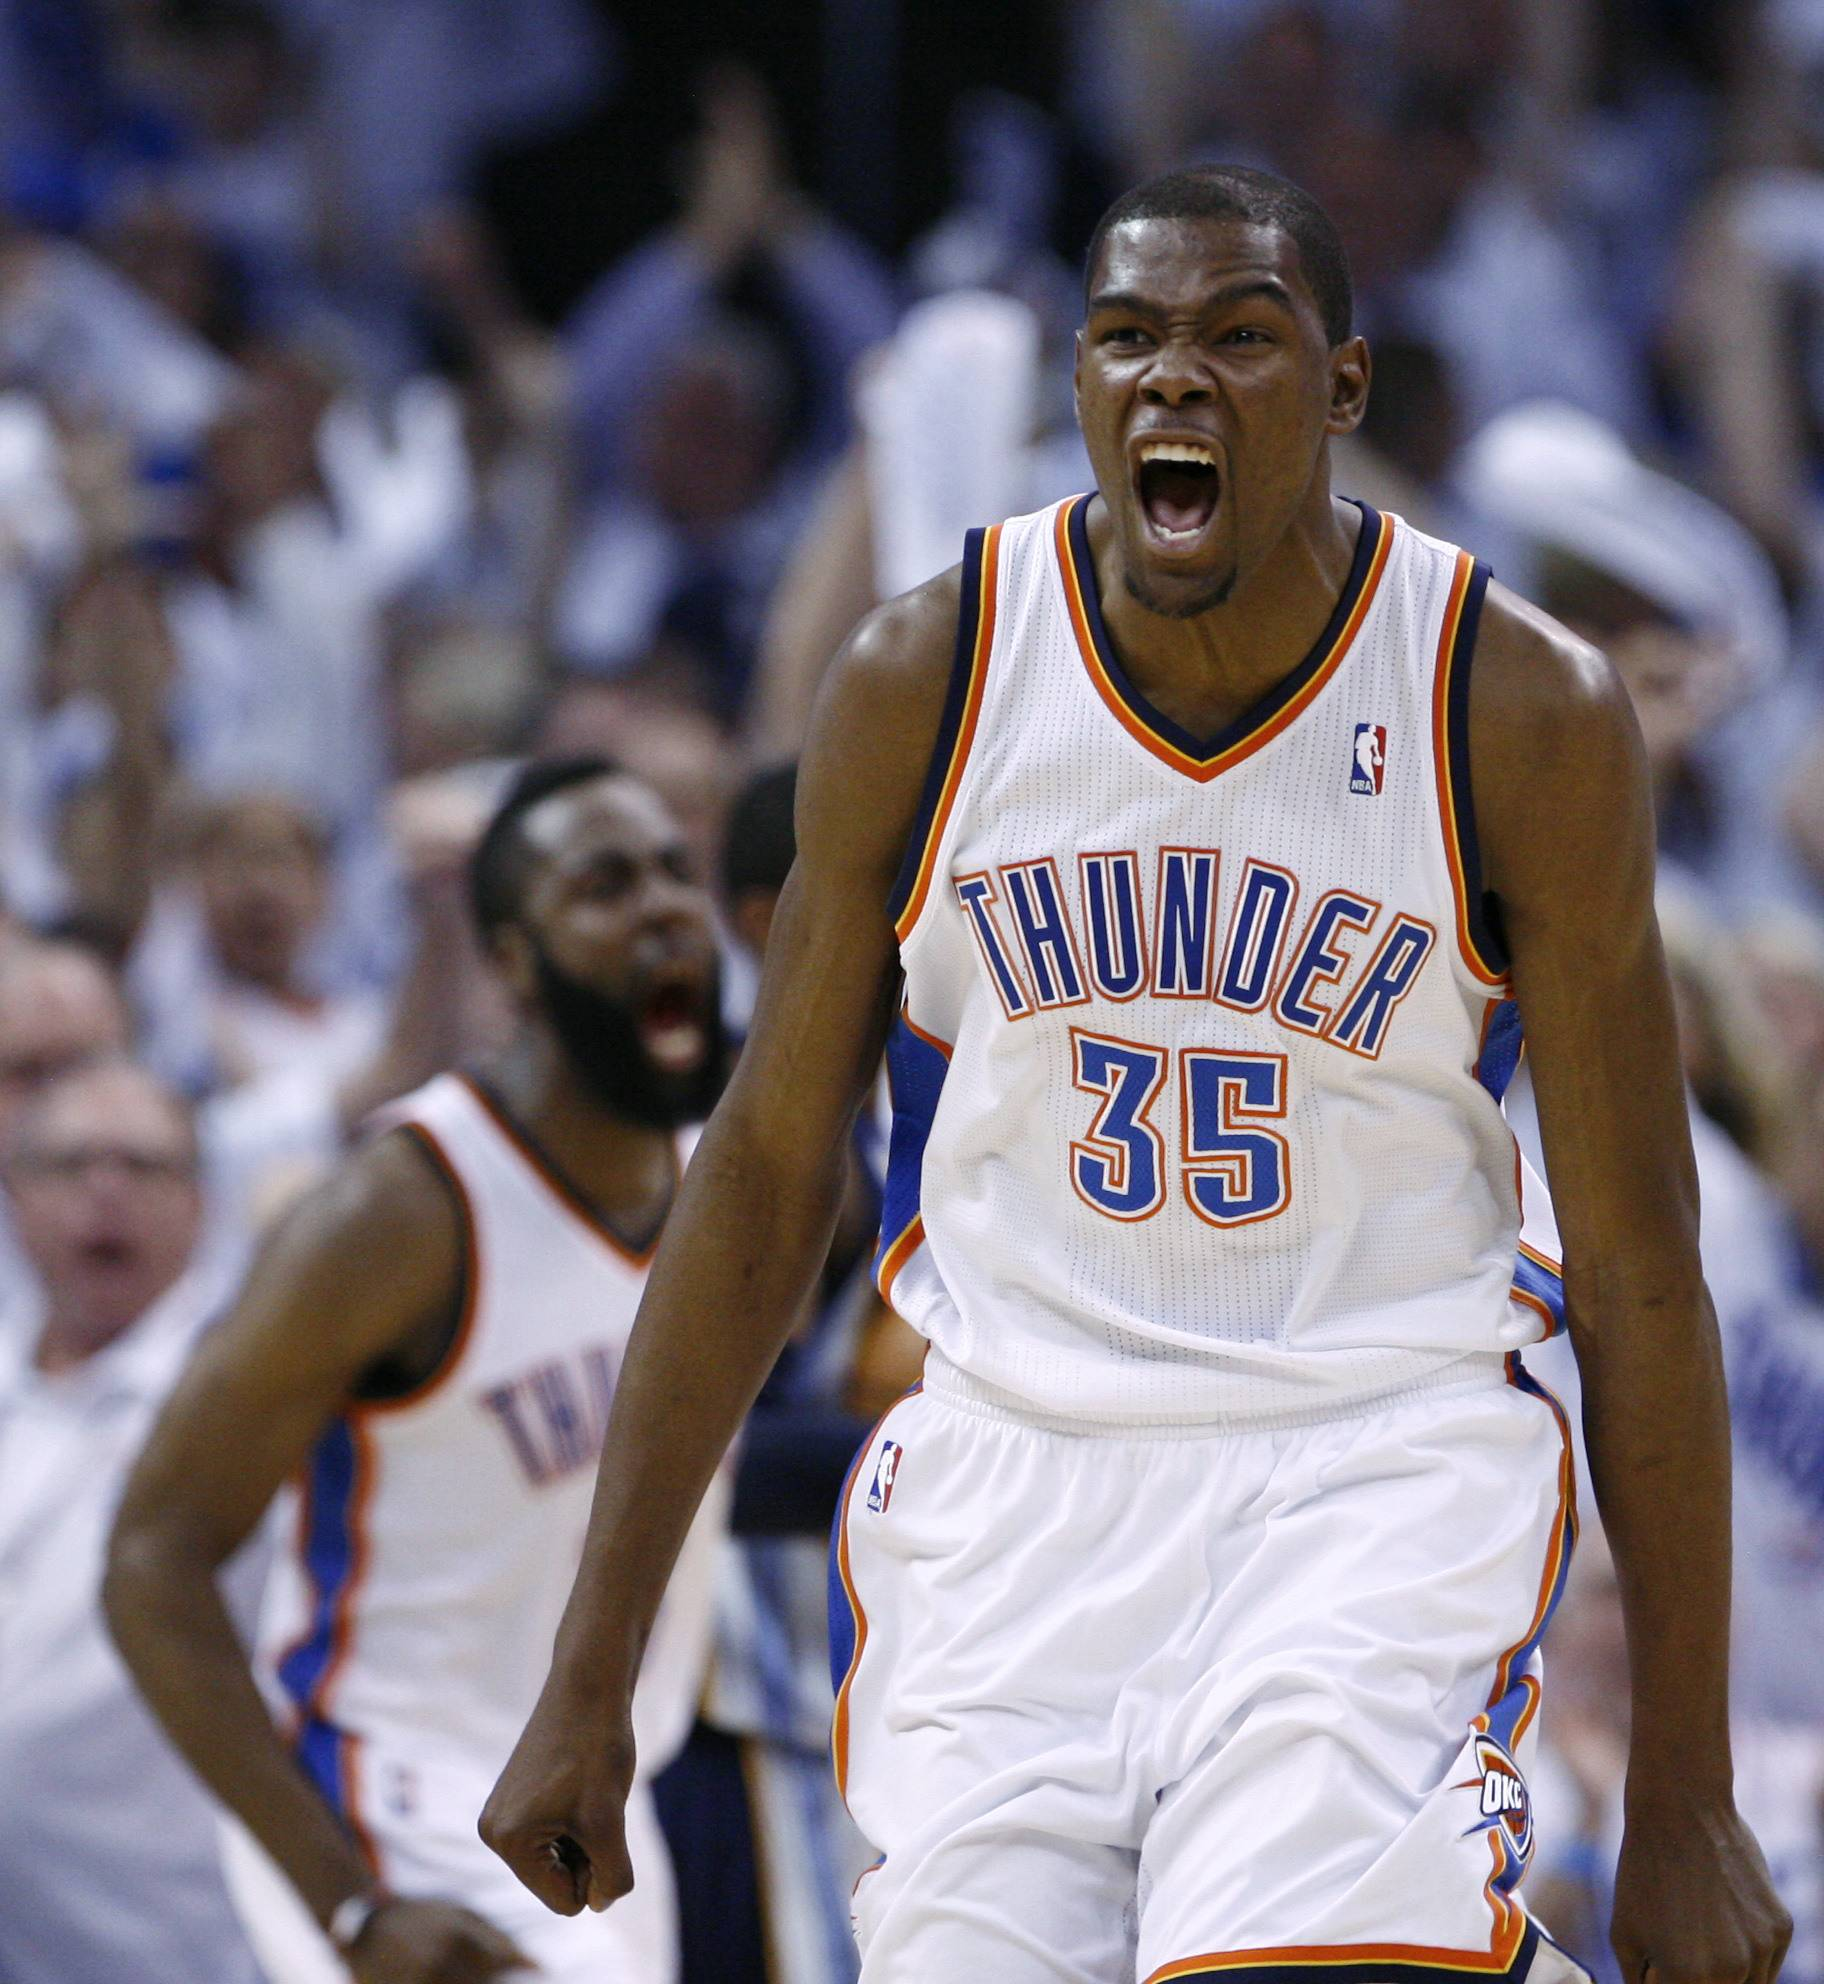 Kevin Durant, right, reacts to a dunk by teammate James Harden, left, in the second quarter of Game 5.